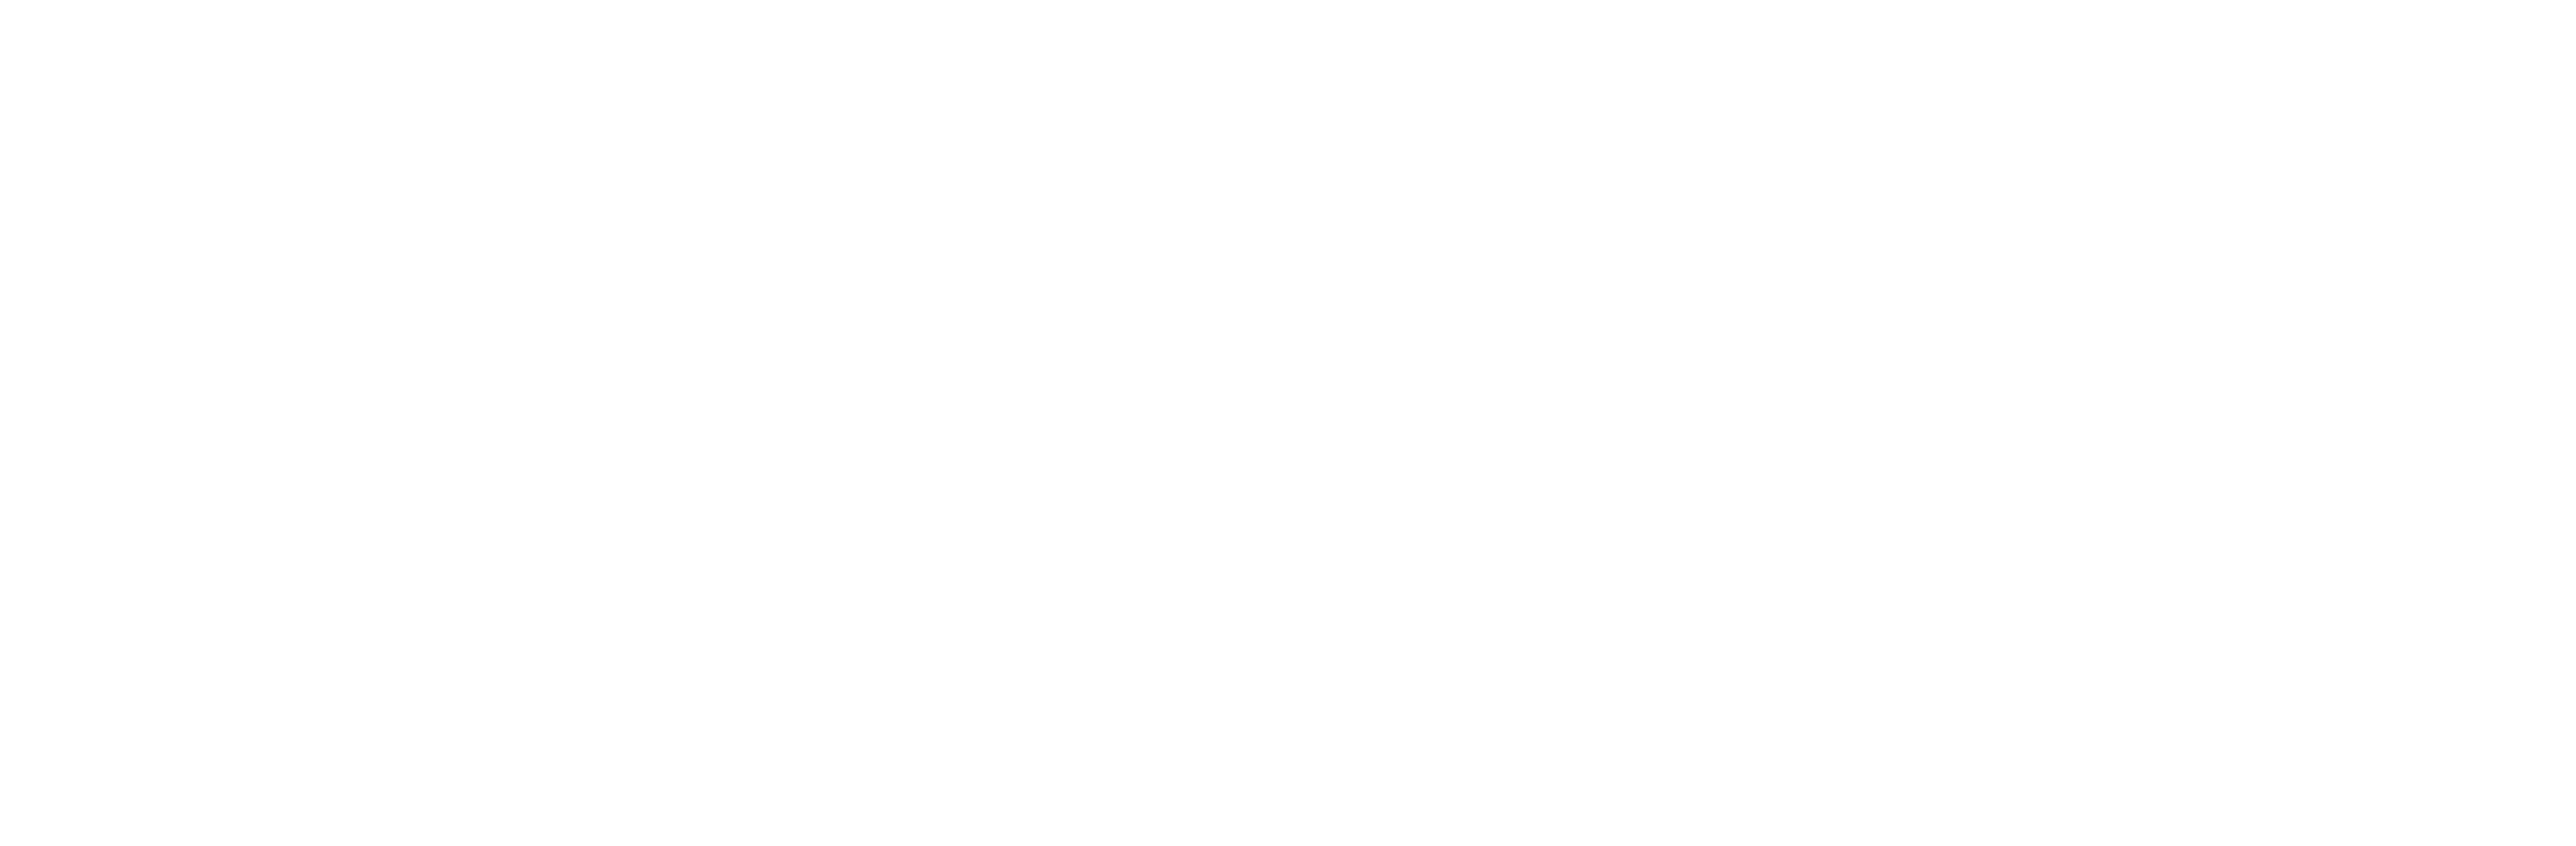 Winnetka Bible Church